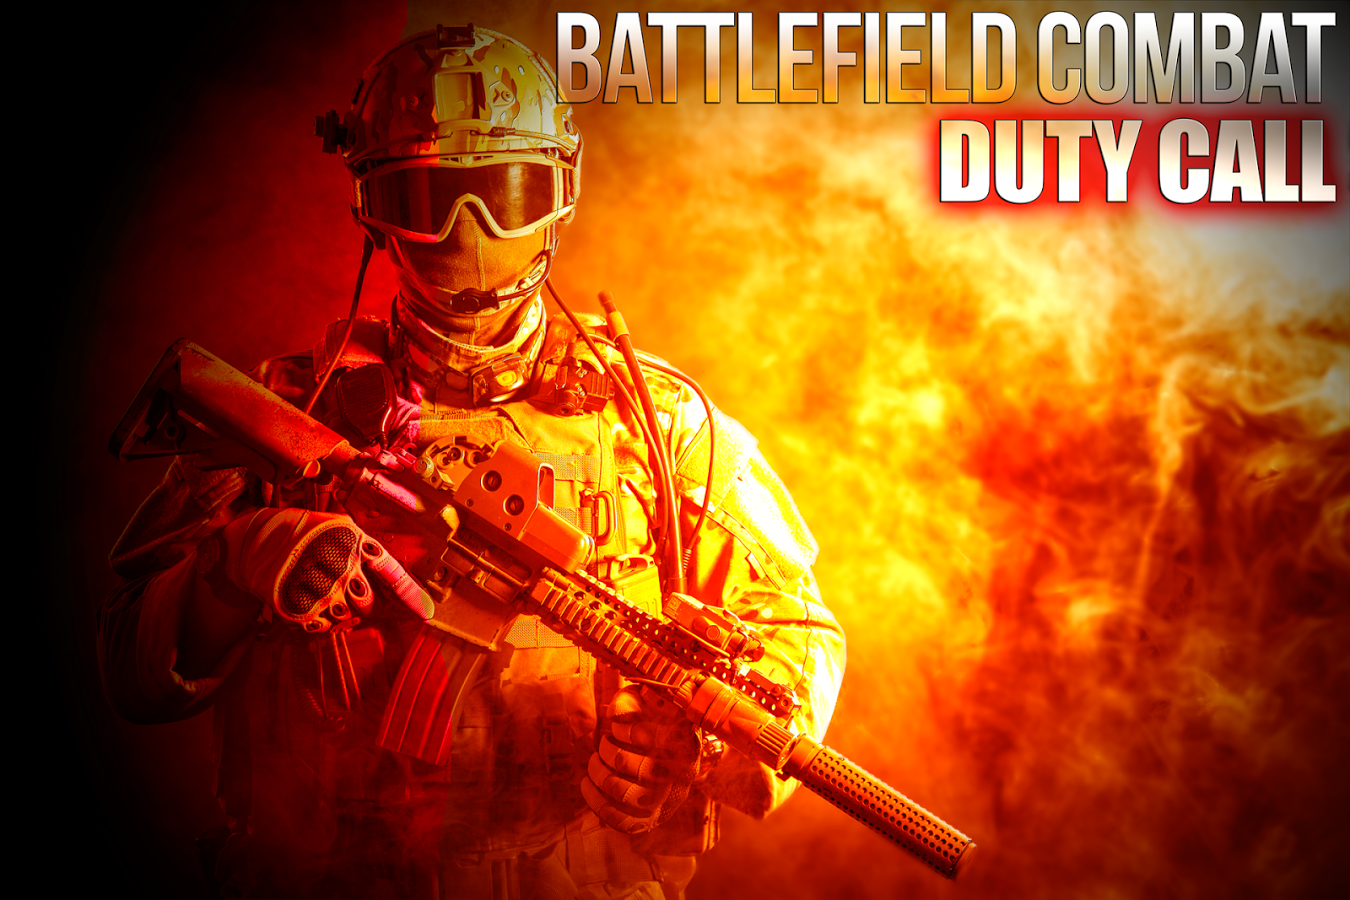 Battlefield Combat Duty Call 1